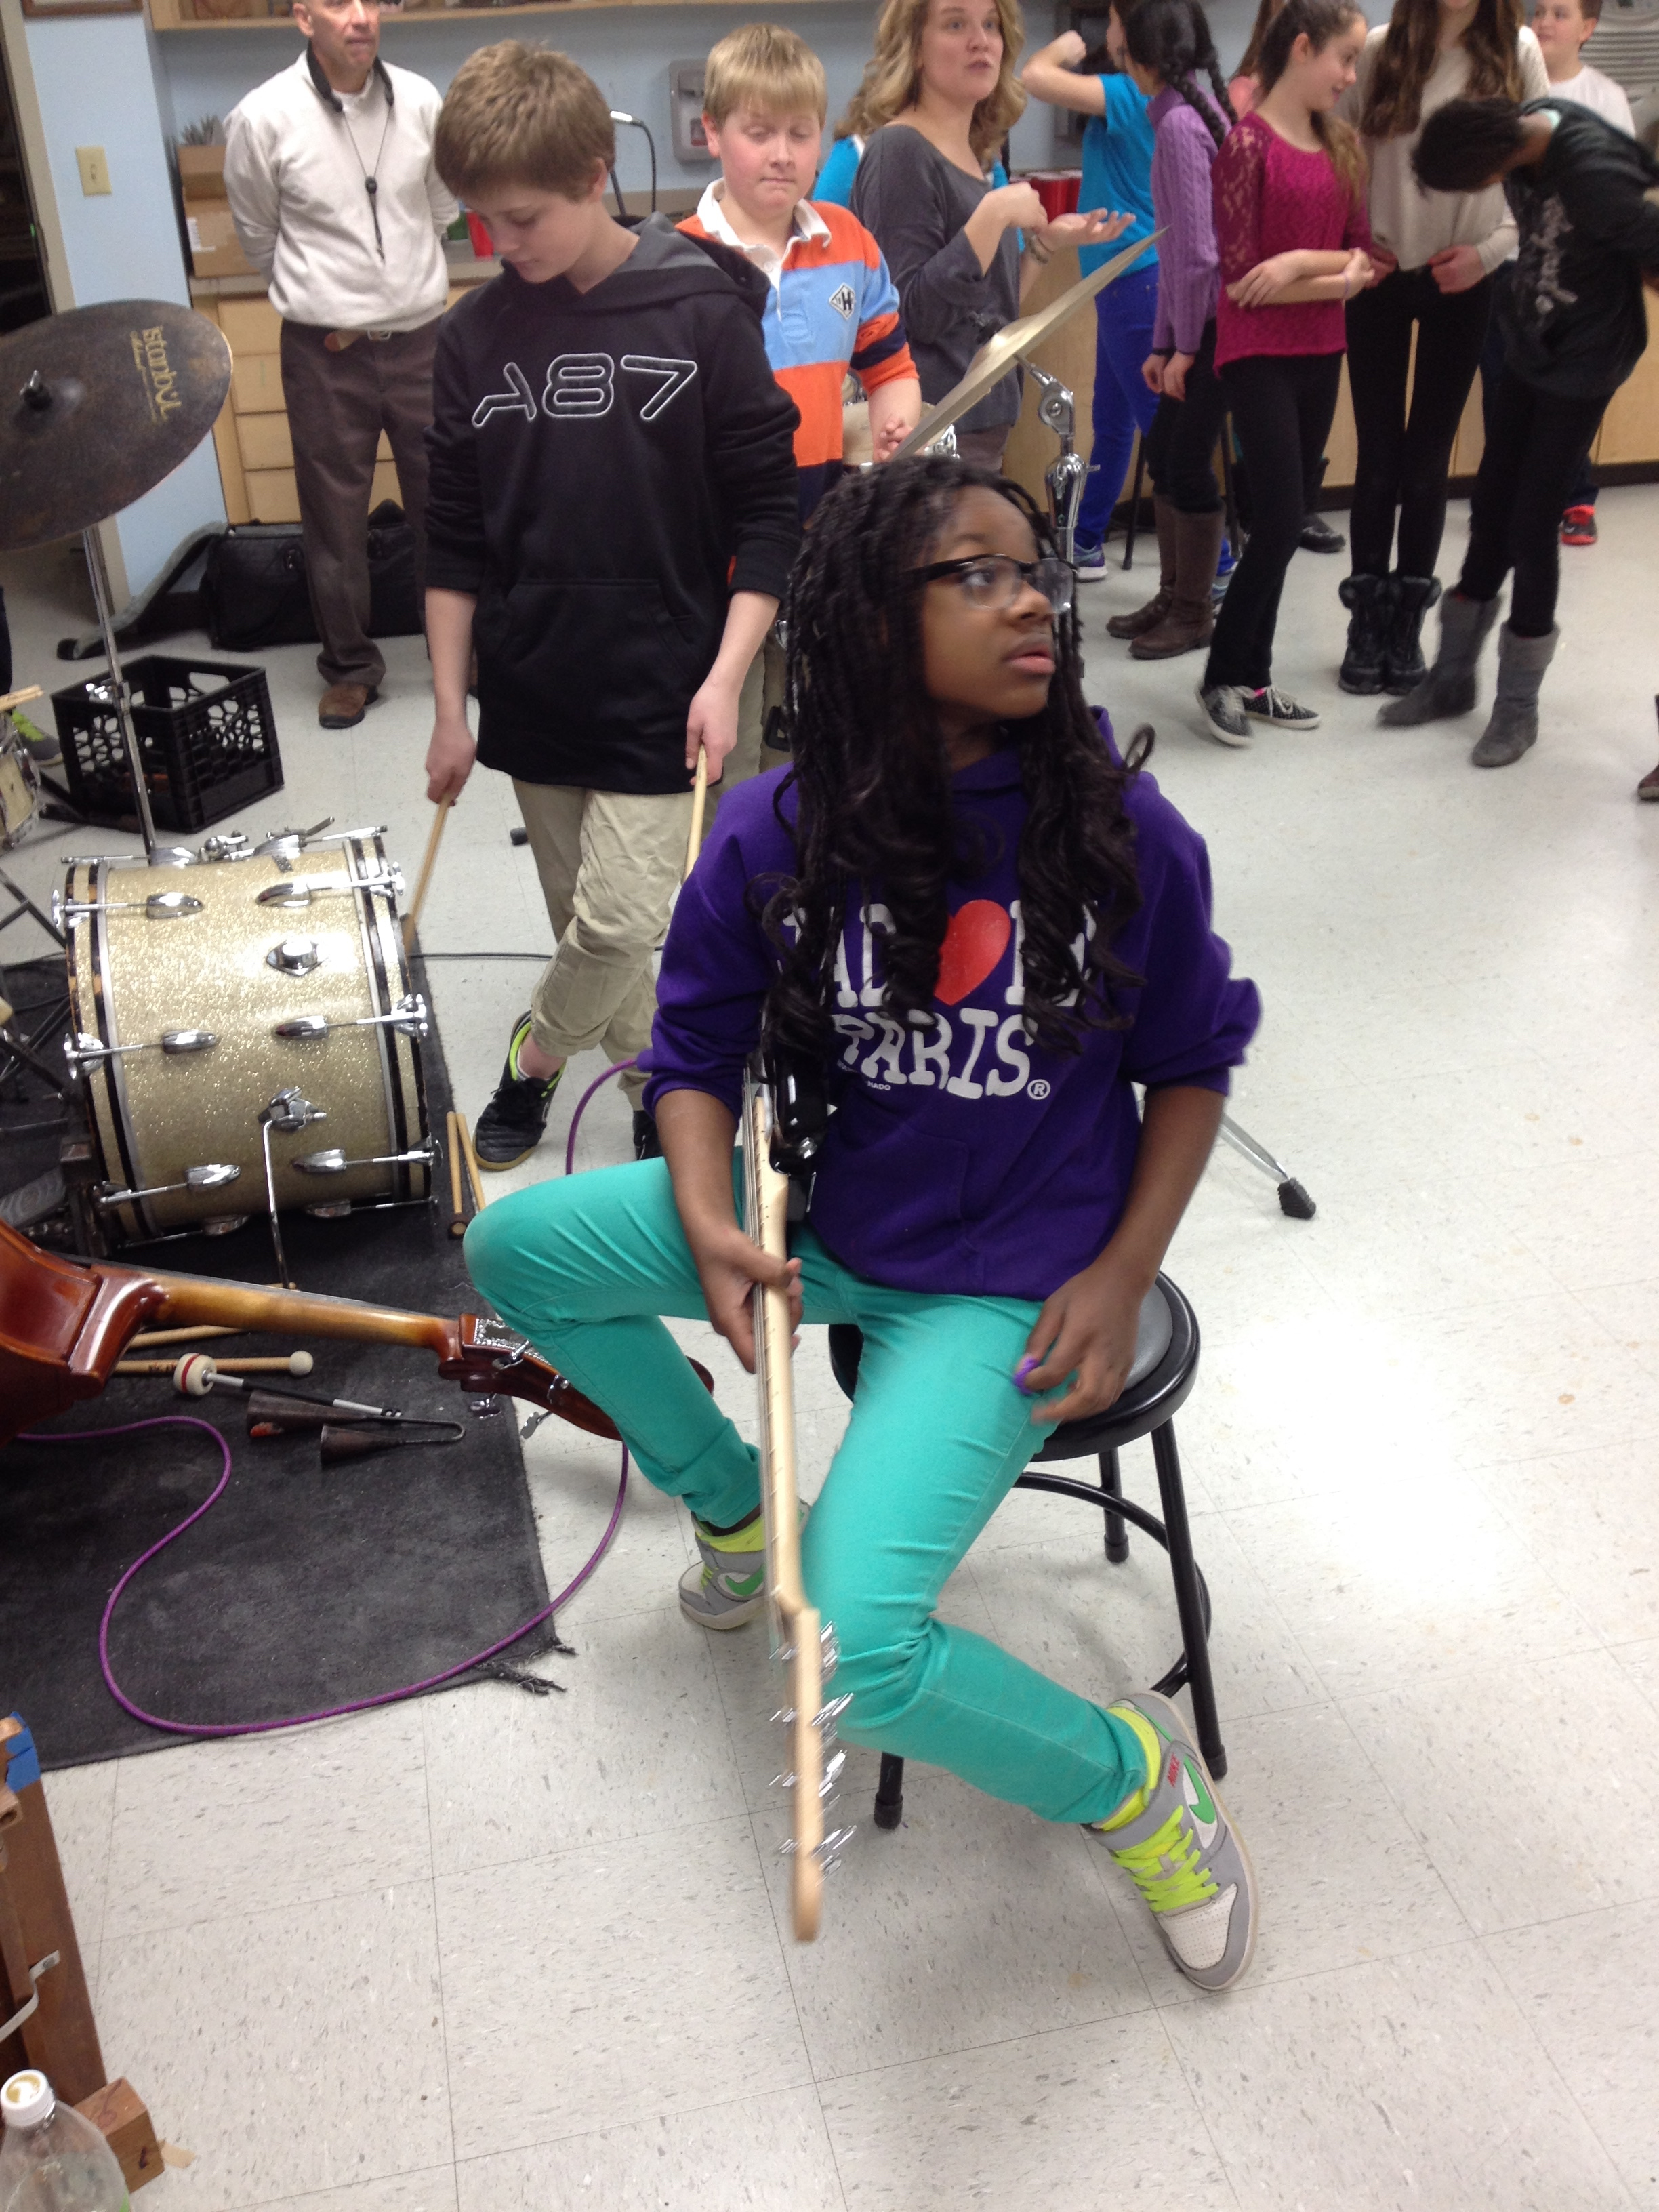 Young bassist listens intently as we compose a song to be performed in music and paint